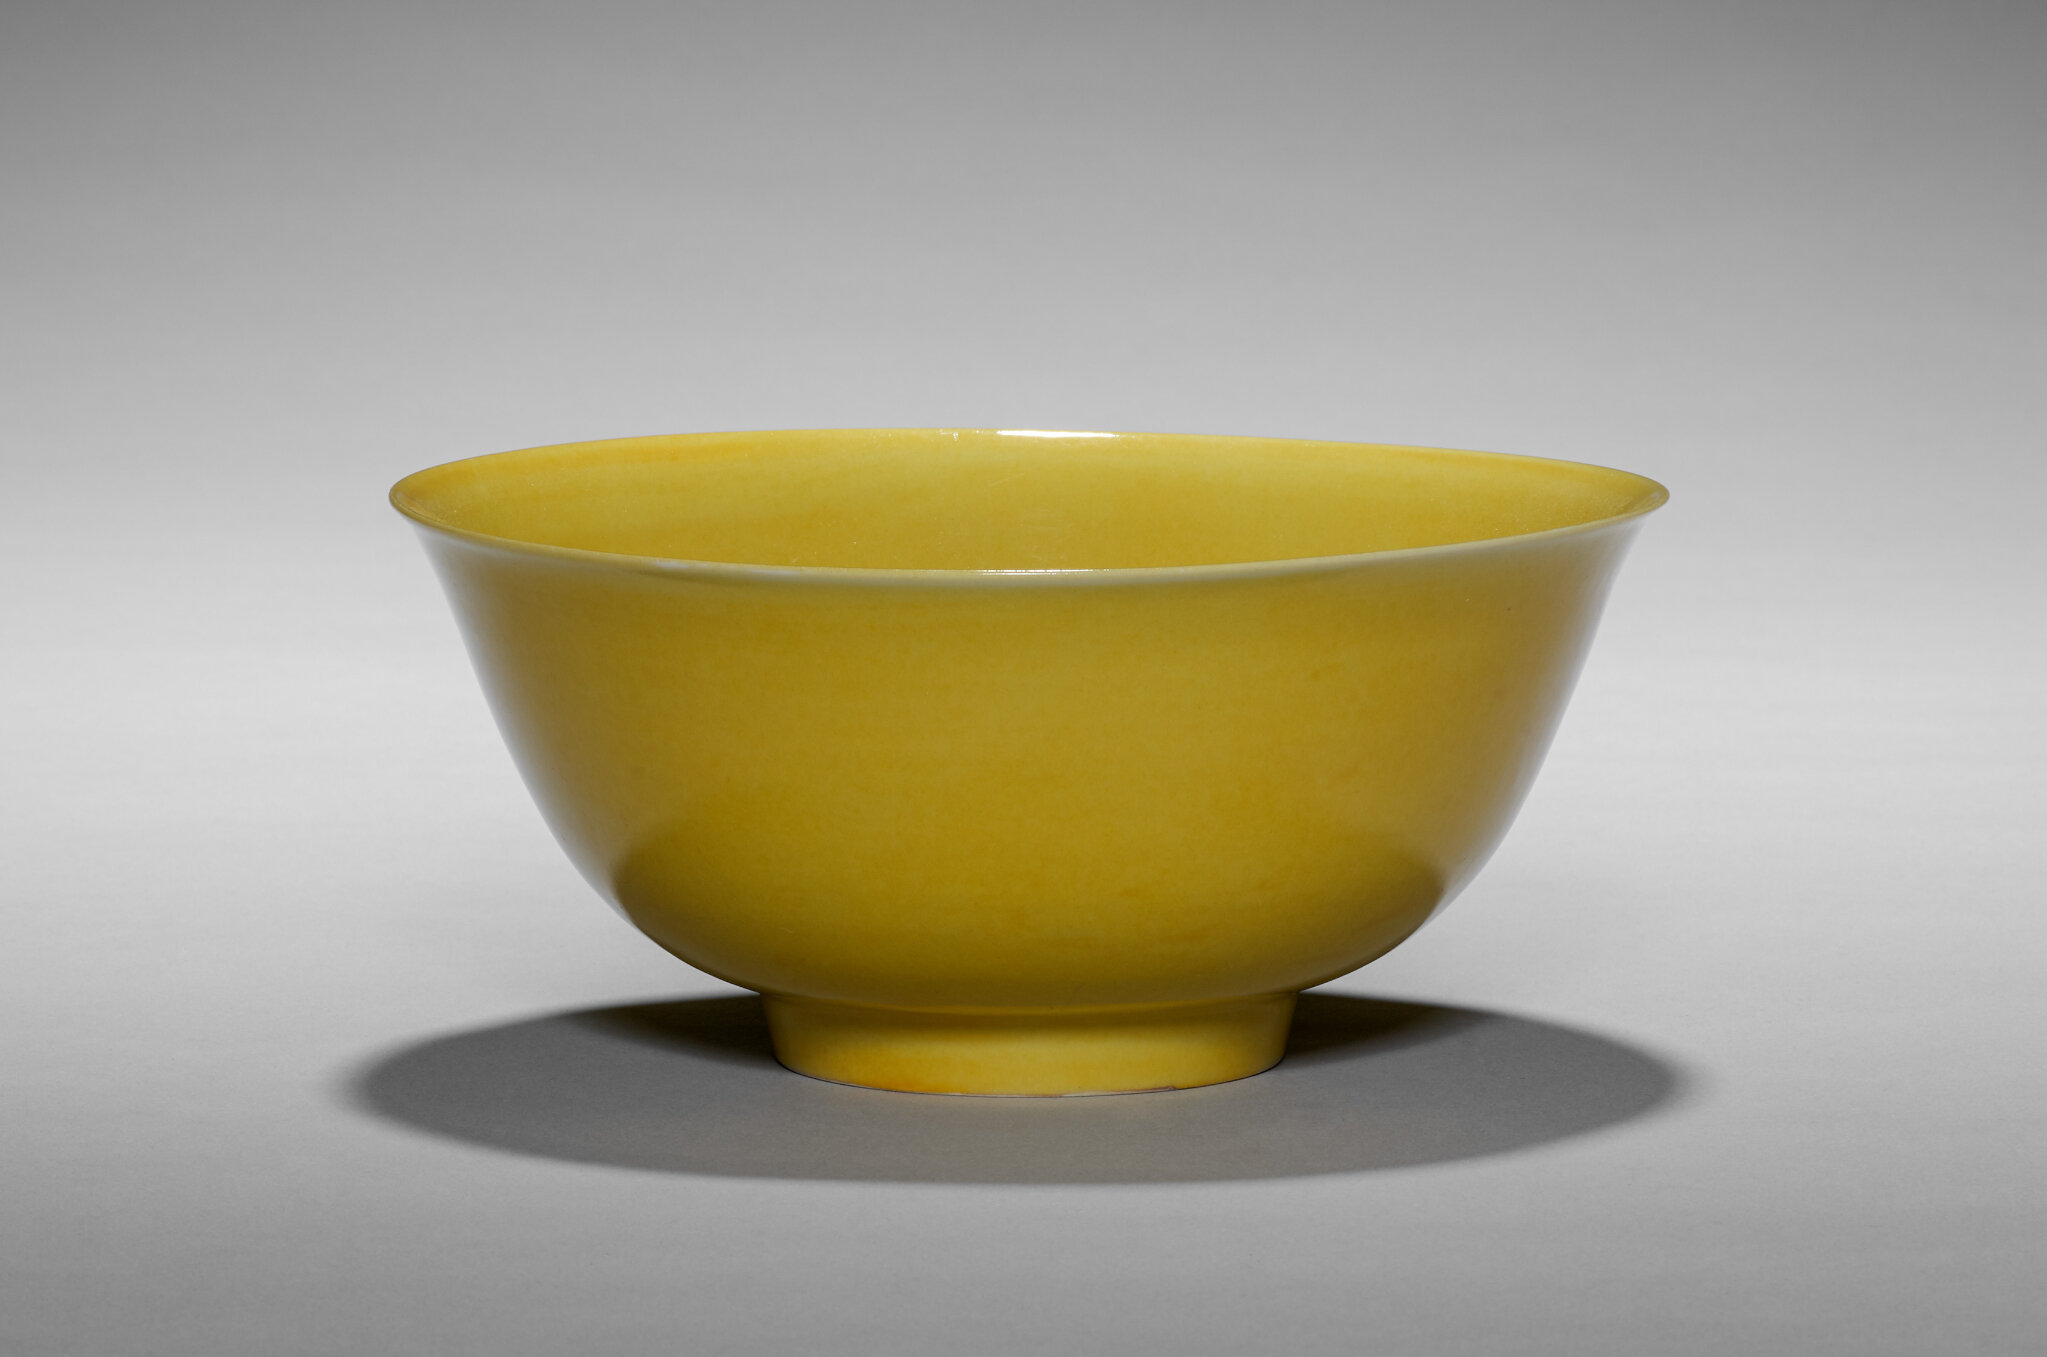 Yellow Glazed Bowl, China, Ming dynasty (1368-1644), Zhengde mark and reign (1505-21). Porcelain, 18.1 cm (7 1/8 in.), Nancy F. and Joseph P. Keithley Collection Gift 2020.180. ------WebKitFormBoundaryEllhaAAsRnxZ4ATP Content-Disposition: form-data; na